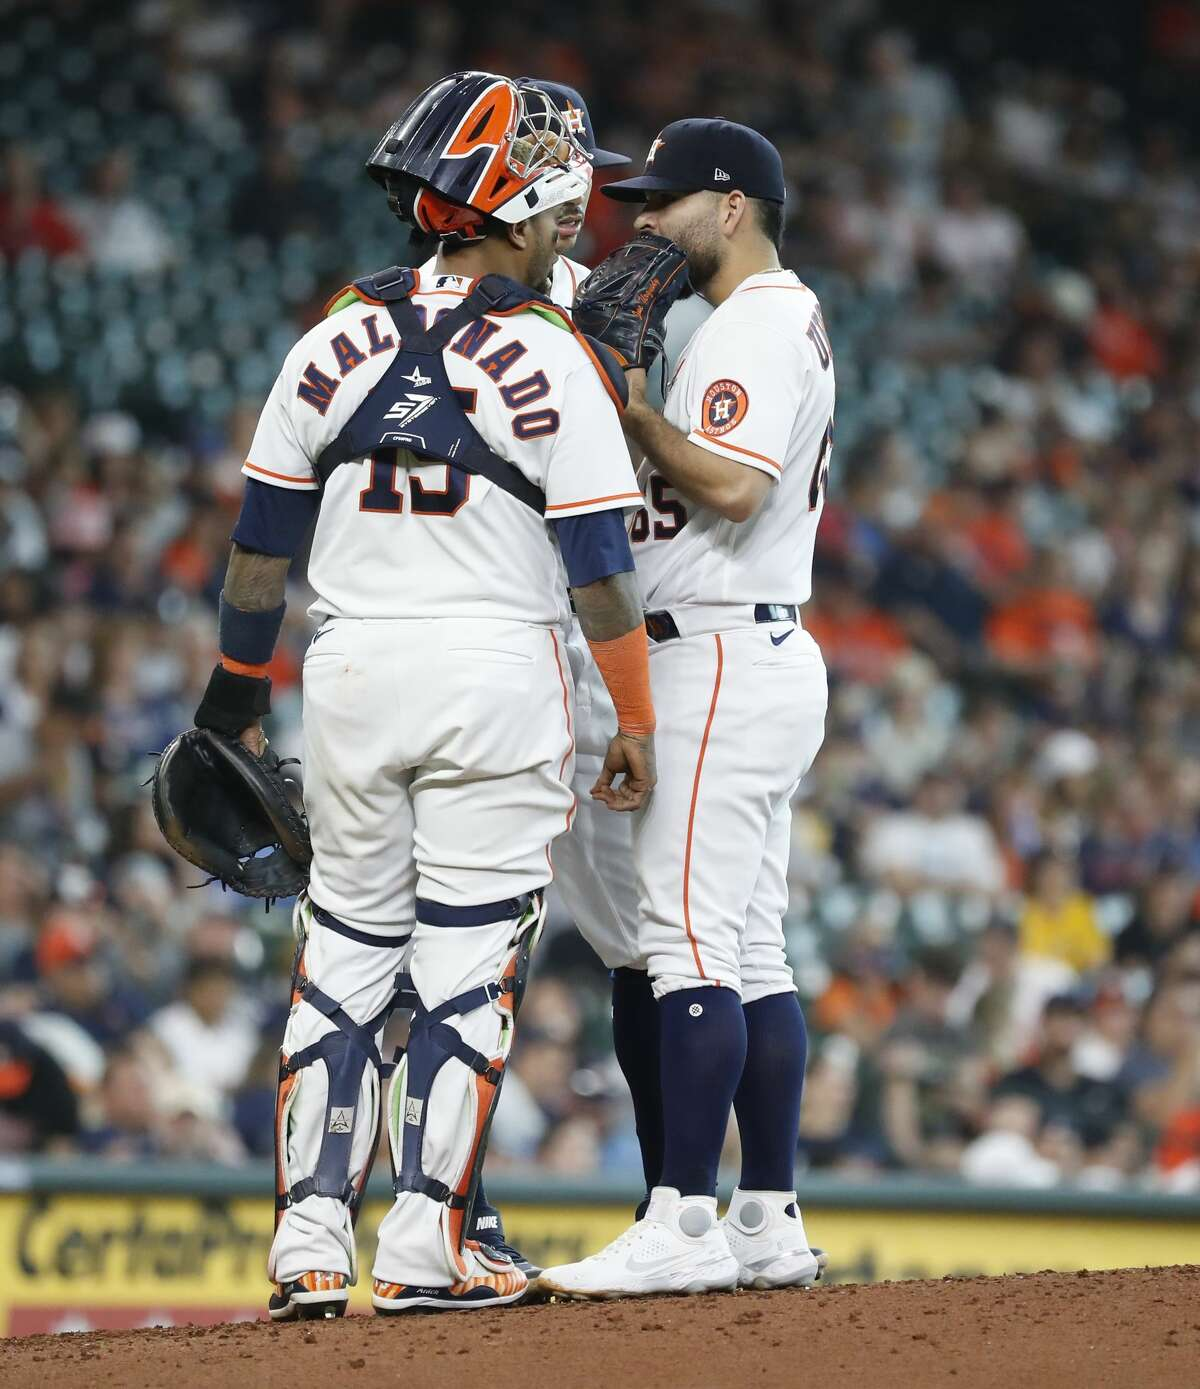 Houston Astros starting pitcher Jose Urquidy (65) chats with catcher Martin Maldonado (15) and Carlos Correa during the sixth inning of an MLB baseball game at Minute Maid Park, Monday, May 31, 2021, in Houston.